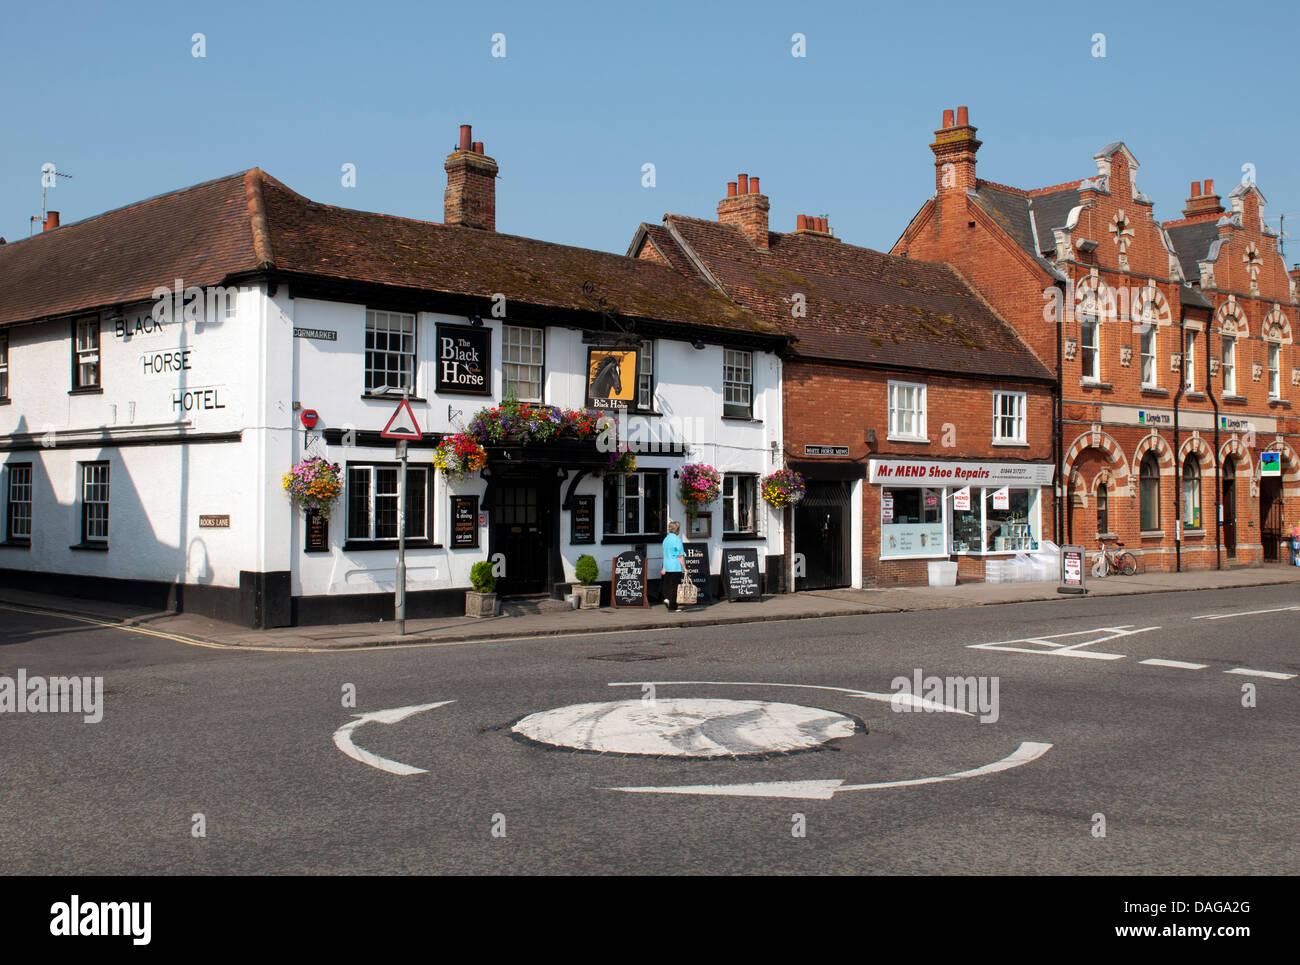 A mini roundabout, Thame, Oxfordshire, UK - Stock Image